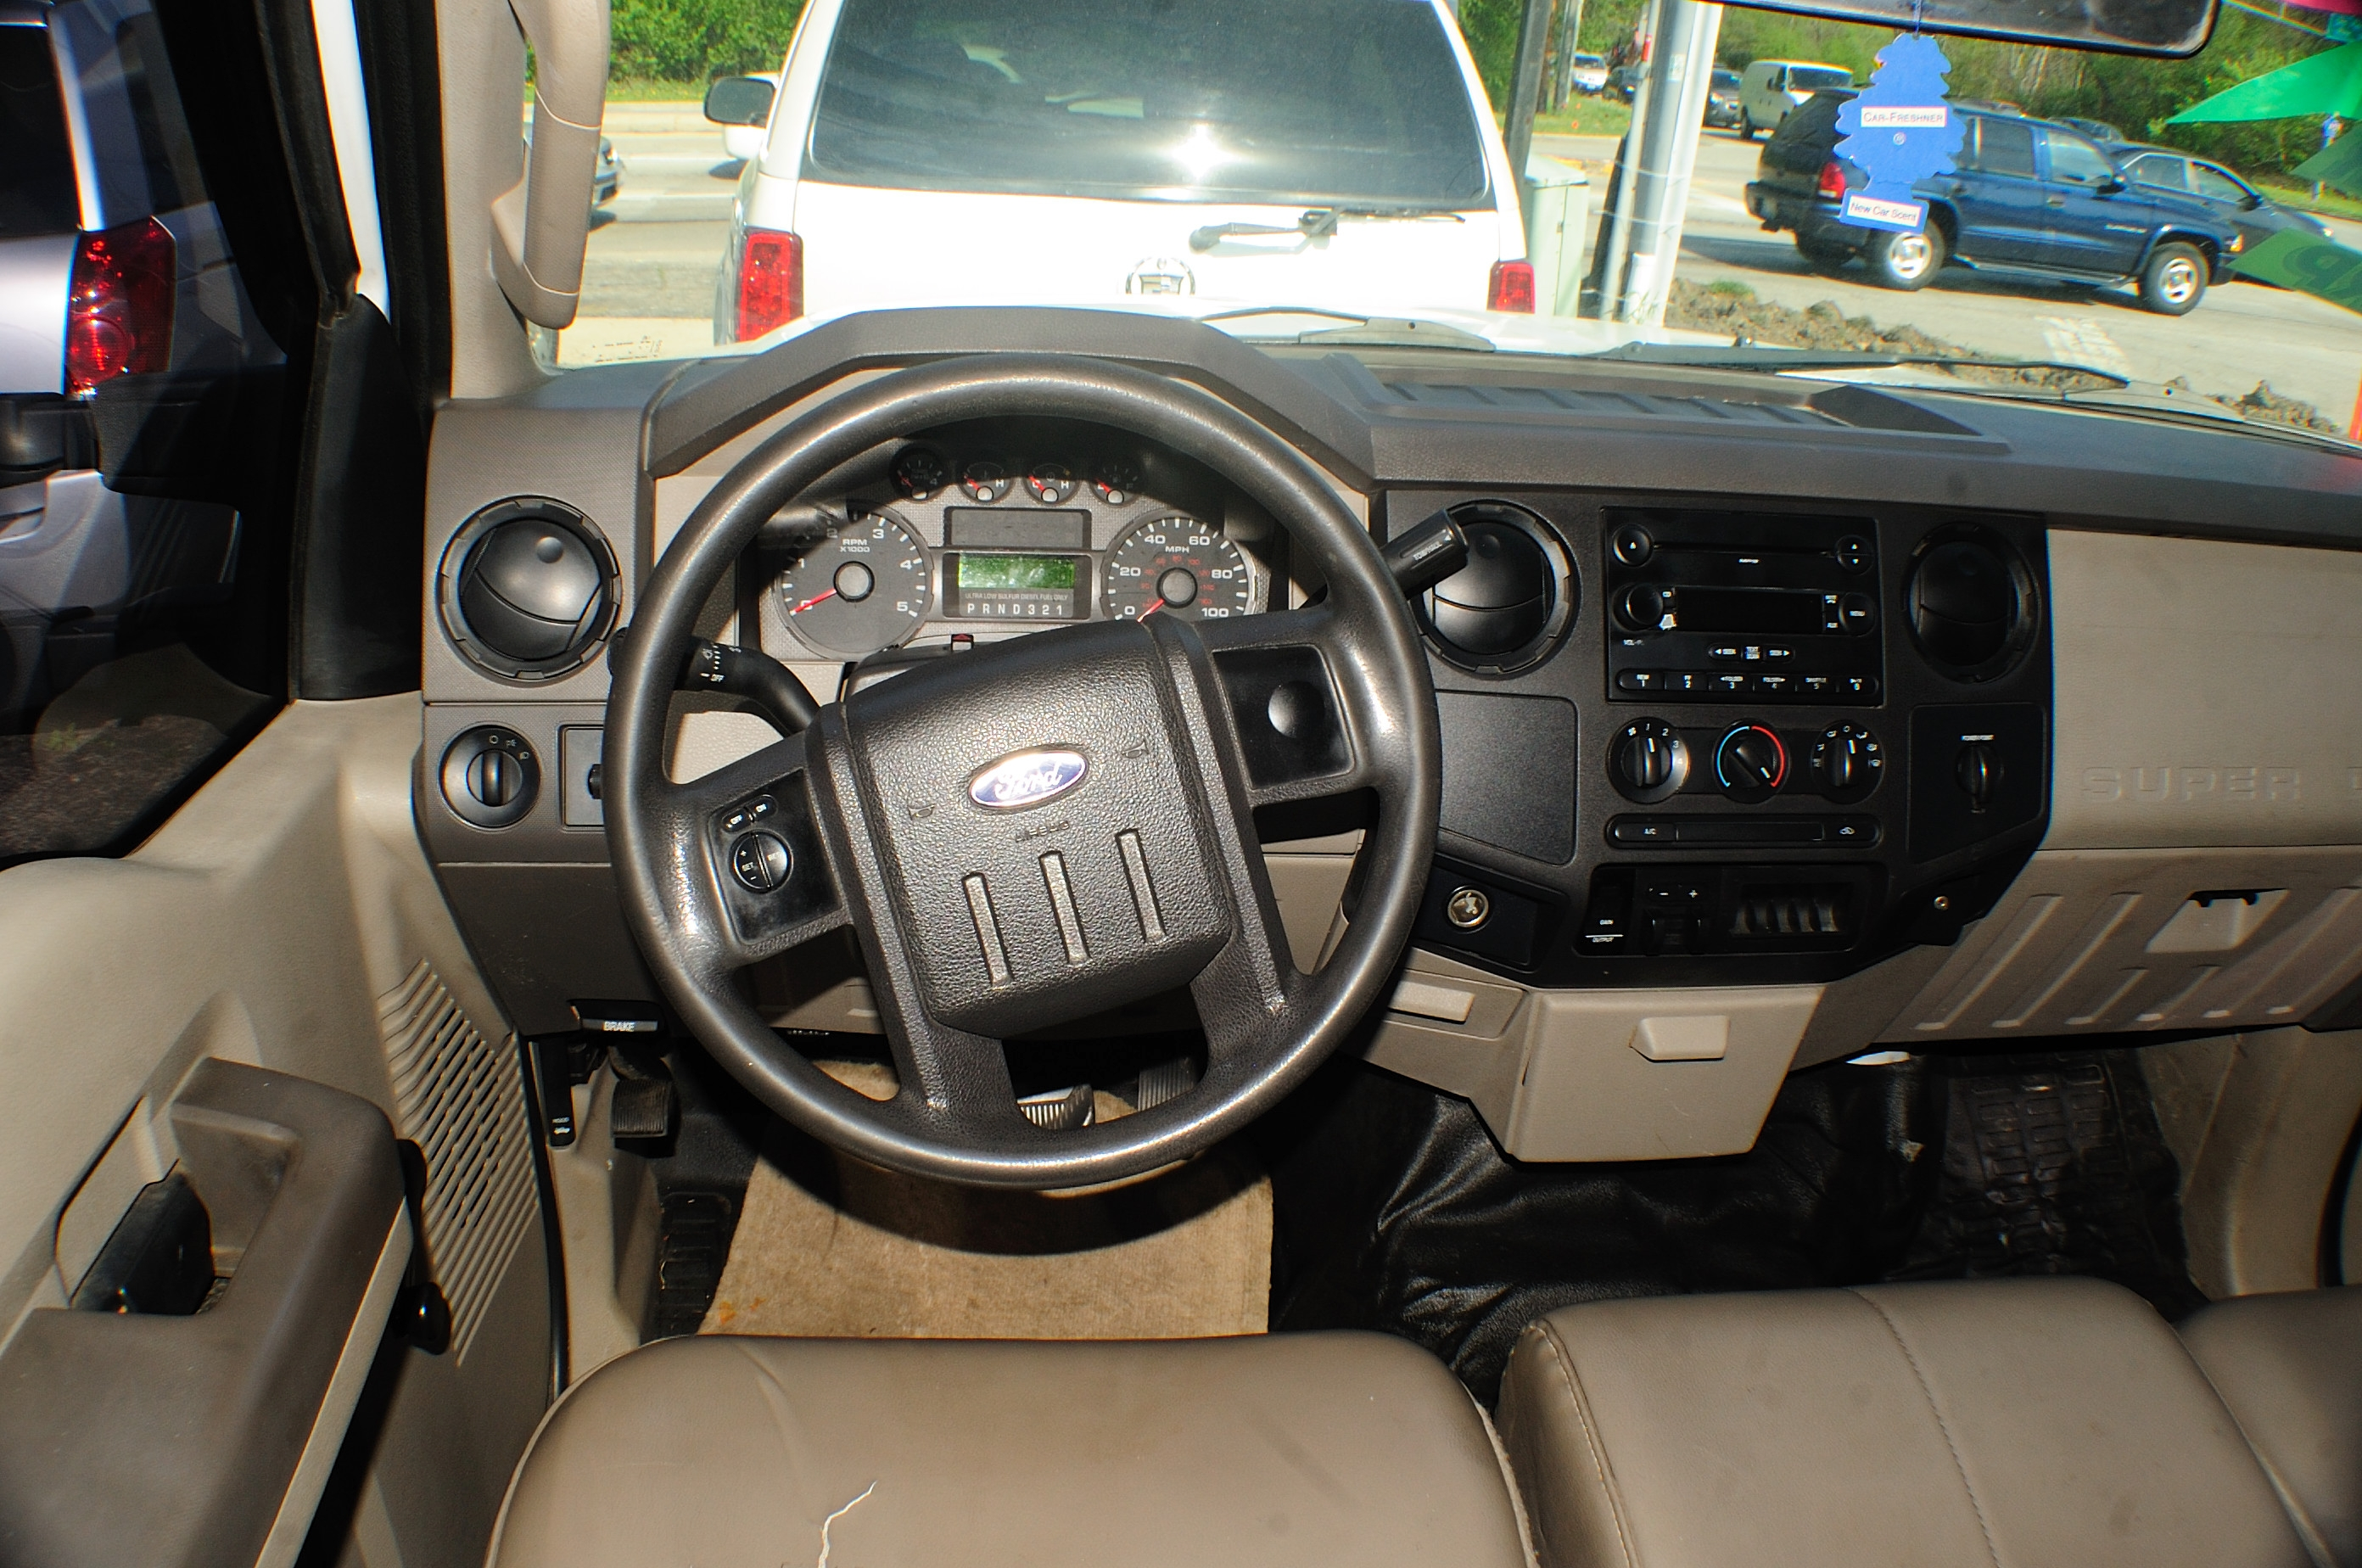 2008 Ford F250 White Crew 4x2 Diesel Truck sale Streamwood Tinley Park Wheeling Woodridge